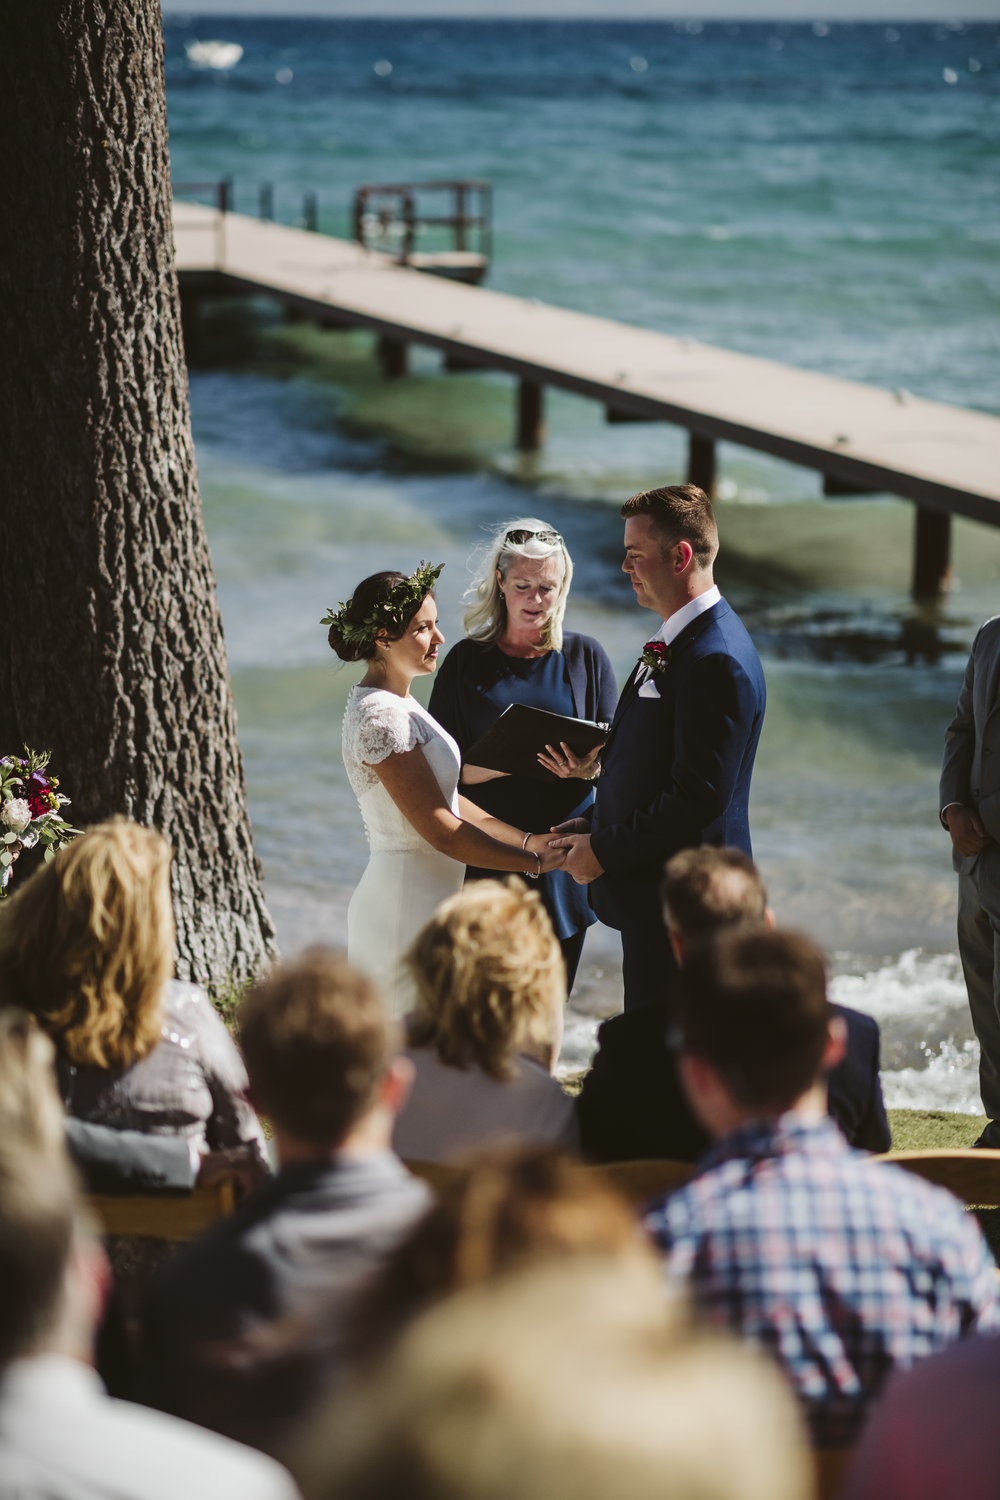 _P8A3451vildphotography-photography-wedding-weddingphotography-tahoewedding-tahoeweddingphotographer-adventurewedding-jake-amy.jpg